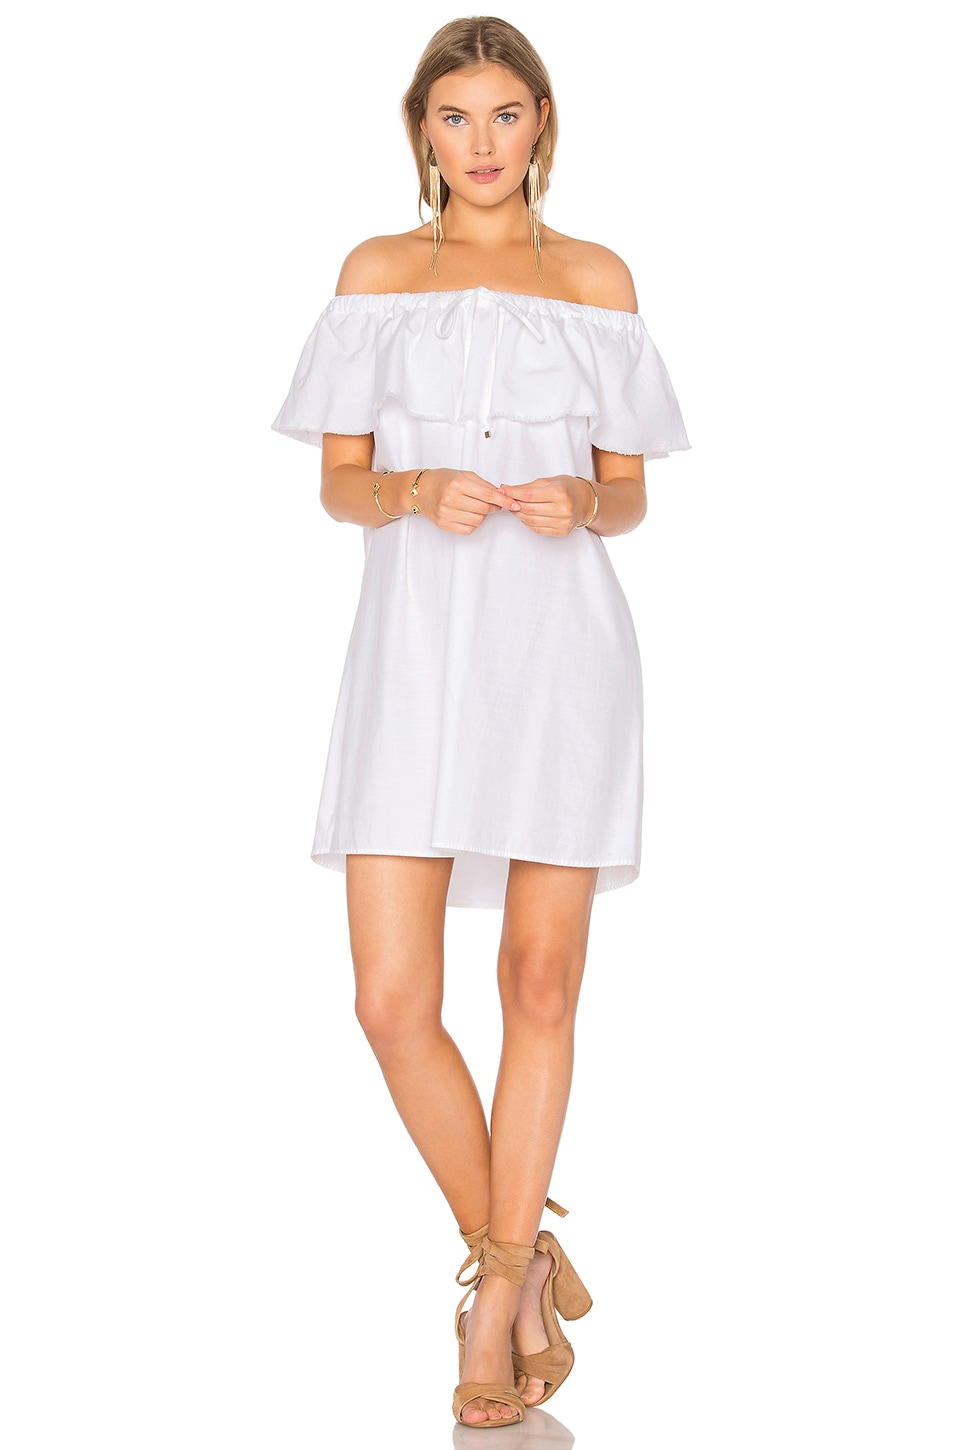 YFB CLOTHING Penelope Dress in White